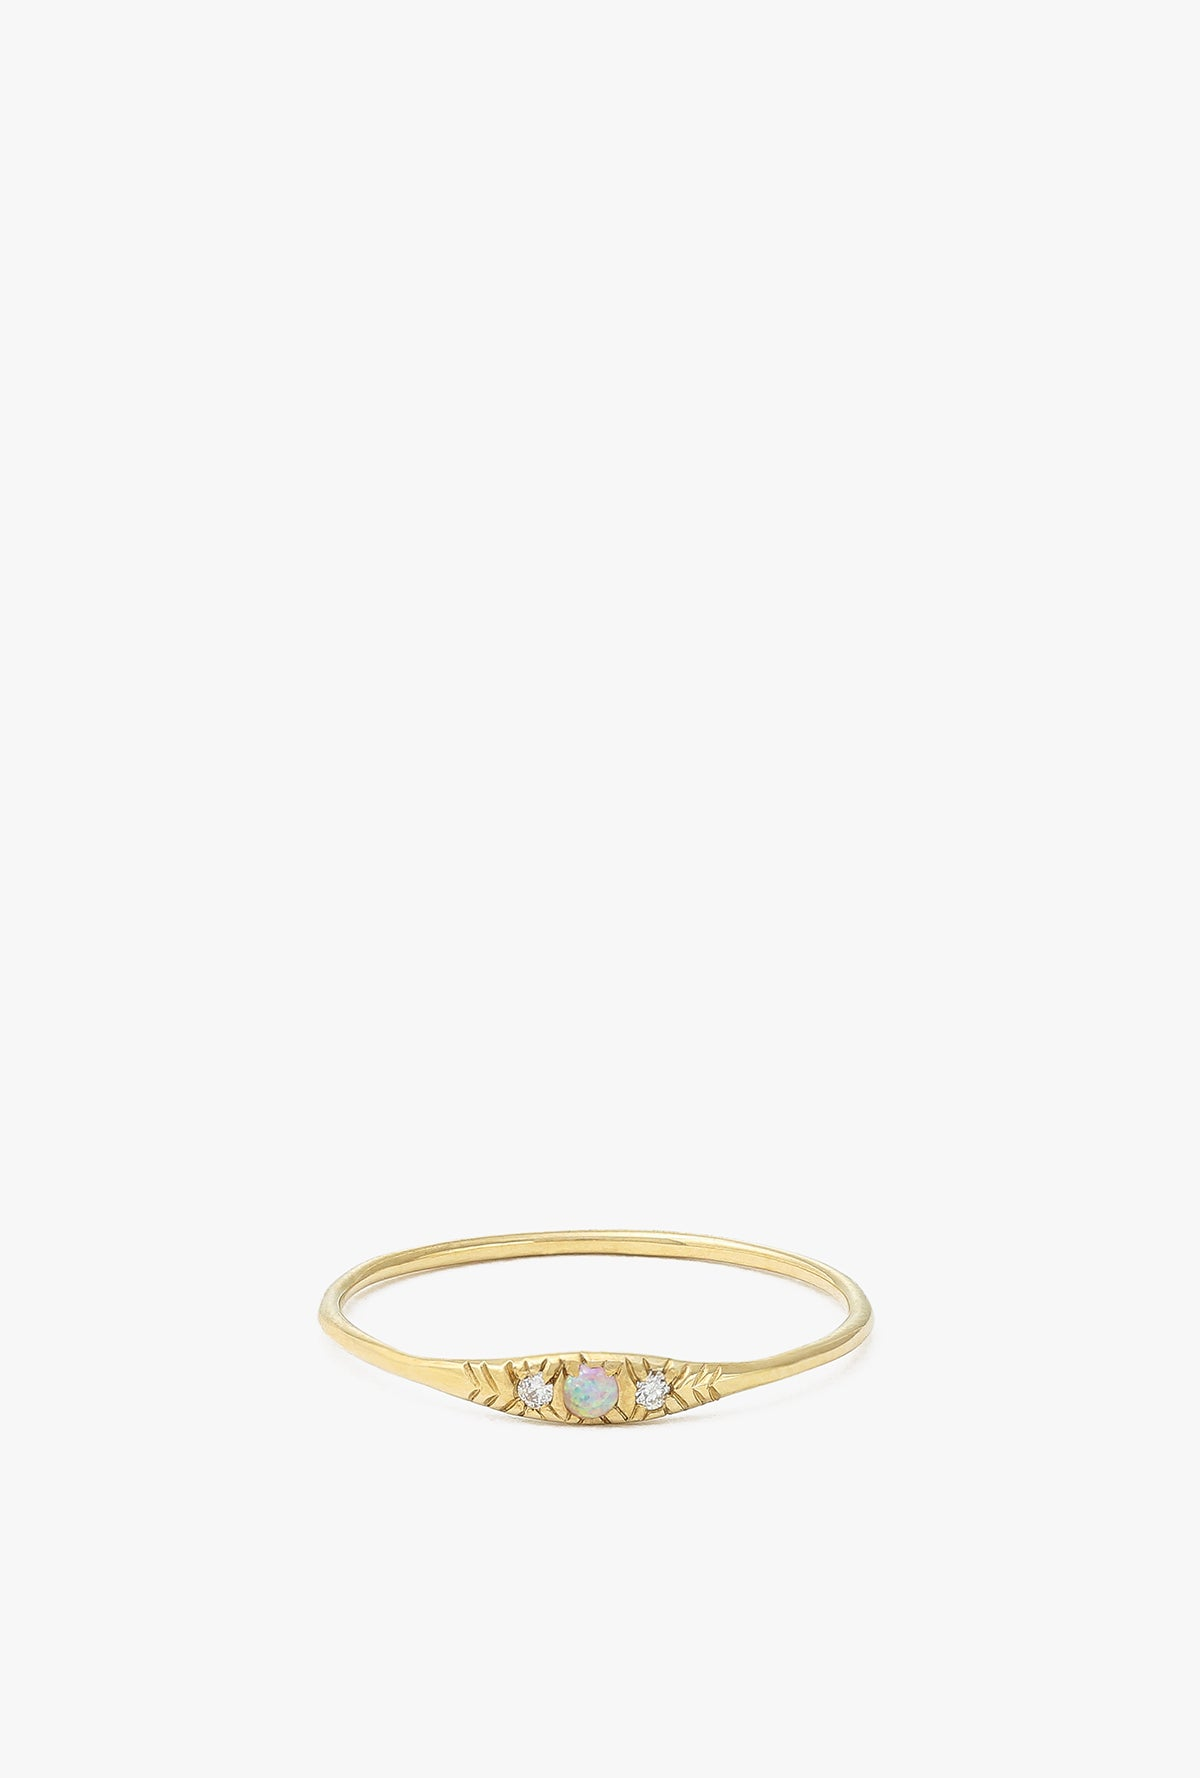 Pave Opal Ovate I Ring